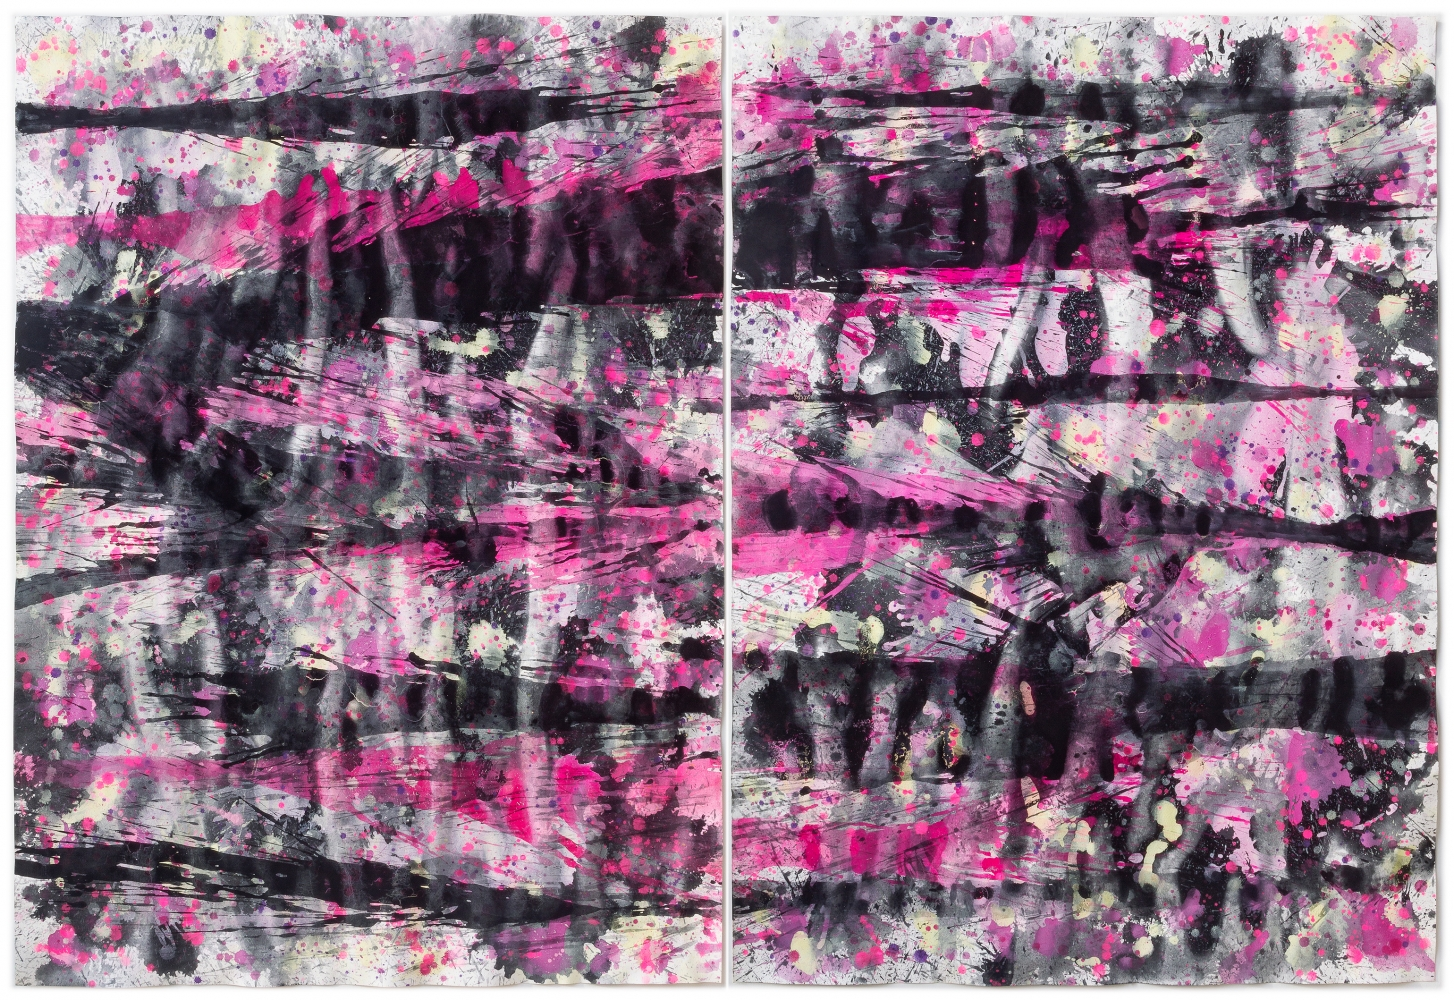 J. Steven Manolis-Flamingo 2014.02, gouache and watercolor painting on paper, 60 x 88 inches (2 panels 60 x 44 inches each), Pink Abstract Art, Tropical Watercolor paintings for sale at Manolis Projects Art Gallery, Miami, Fl